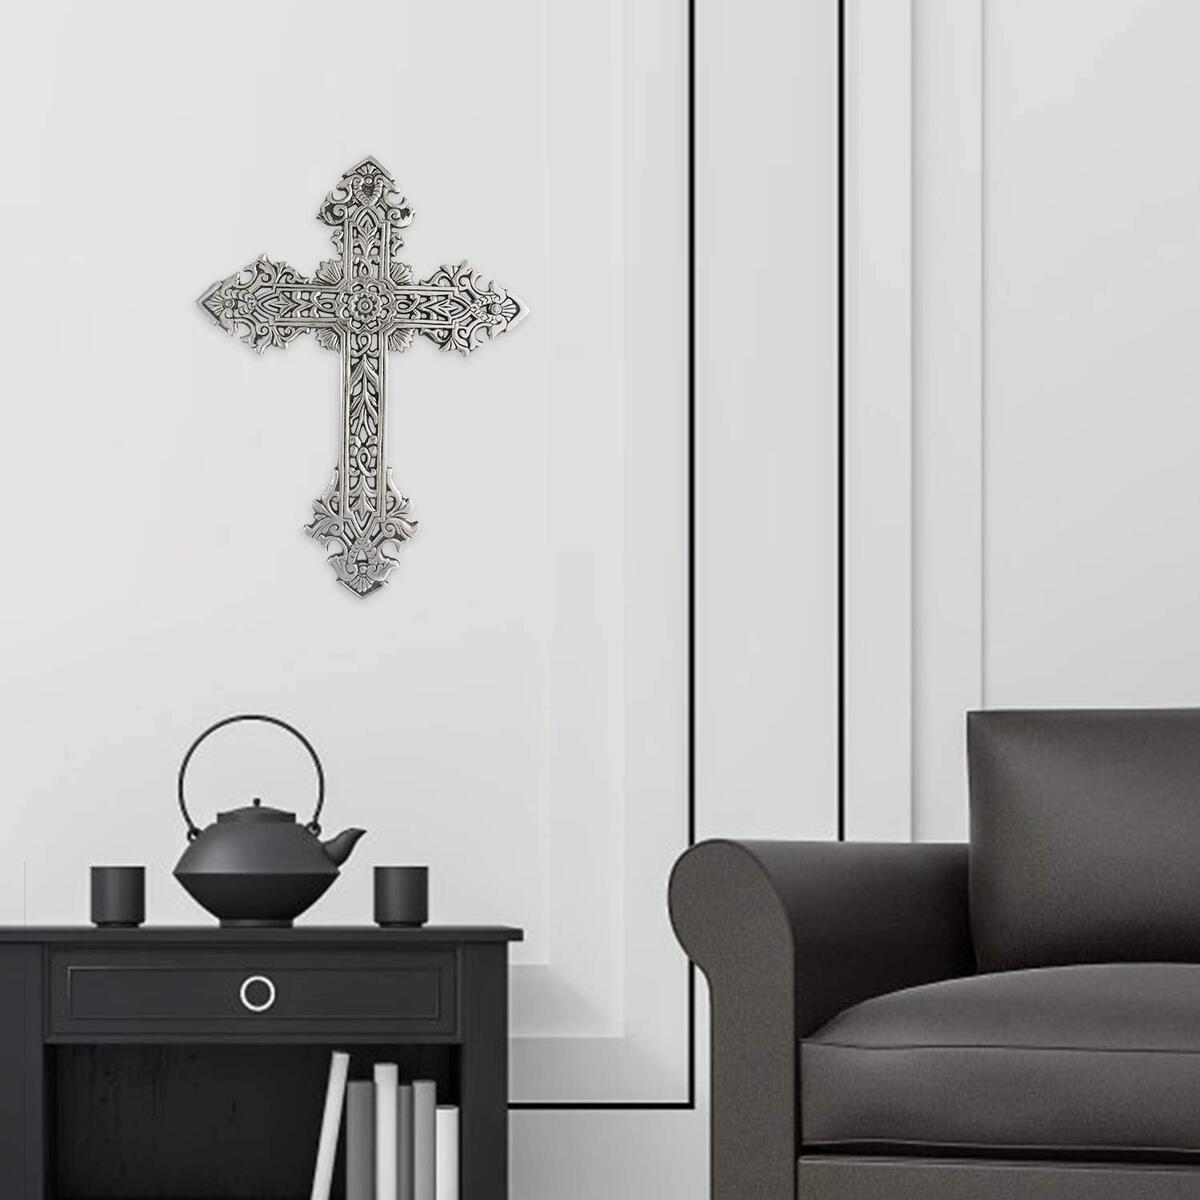 Decorative Family Wall Cross Large Metal Decorations for Home - Religious Metal Hanging Cross Wall Decor, Best for Home and As A Gift - Silver Nickel Finish Wall Art, Black Glazed